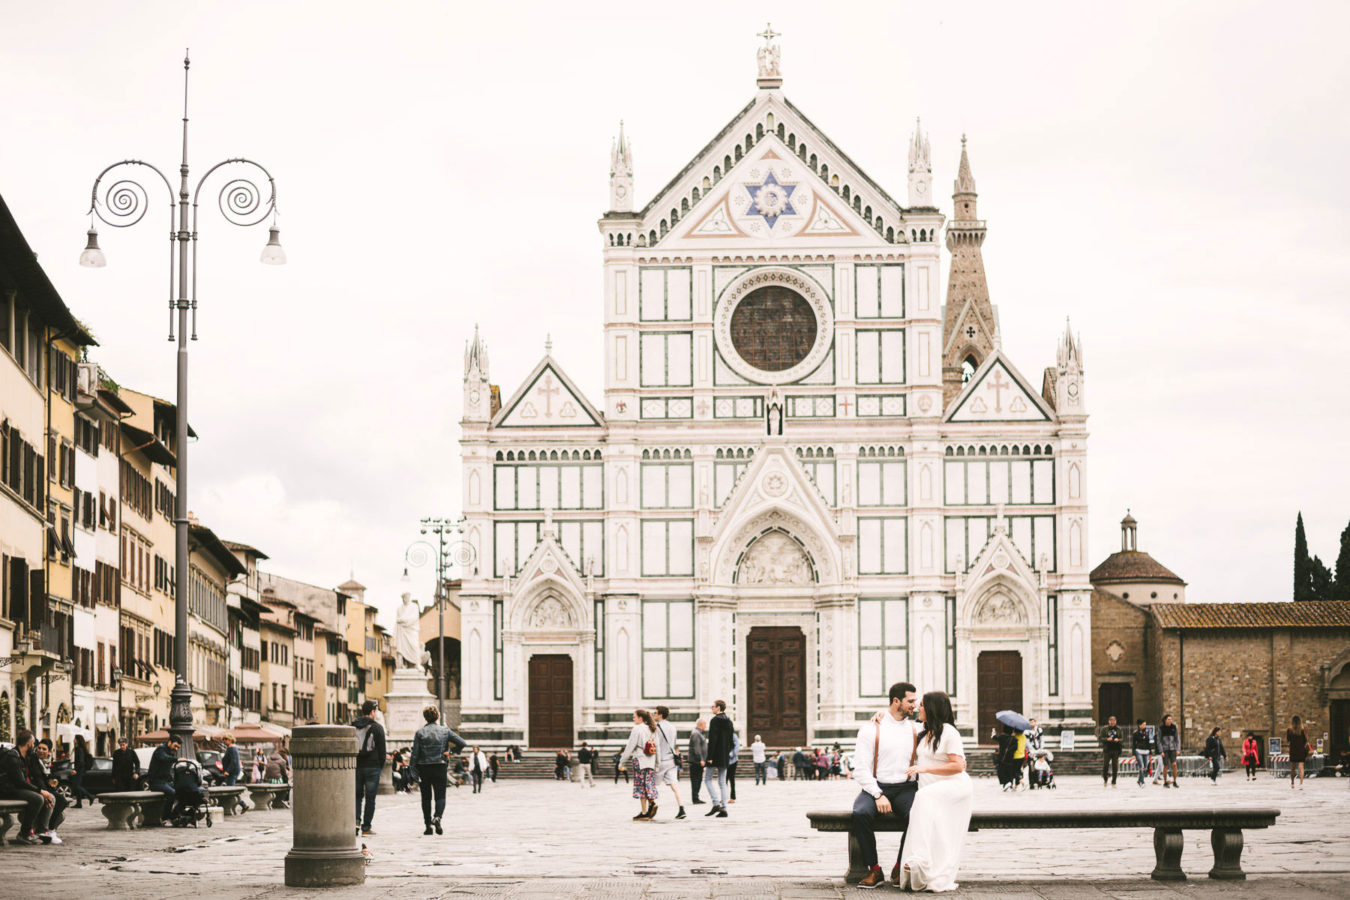 Sweet elopement in Italy to intimately seal your love. Dreamy elegant elopement photo in Florence at Santa Croce square near Arno river